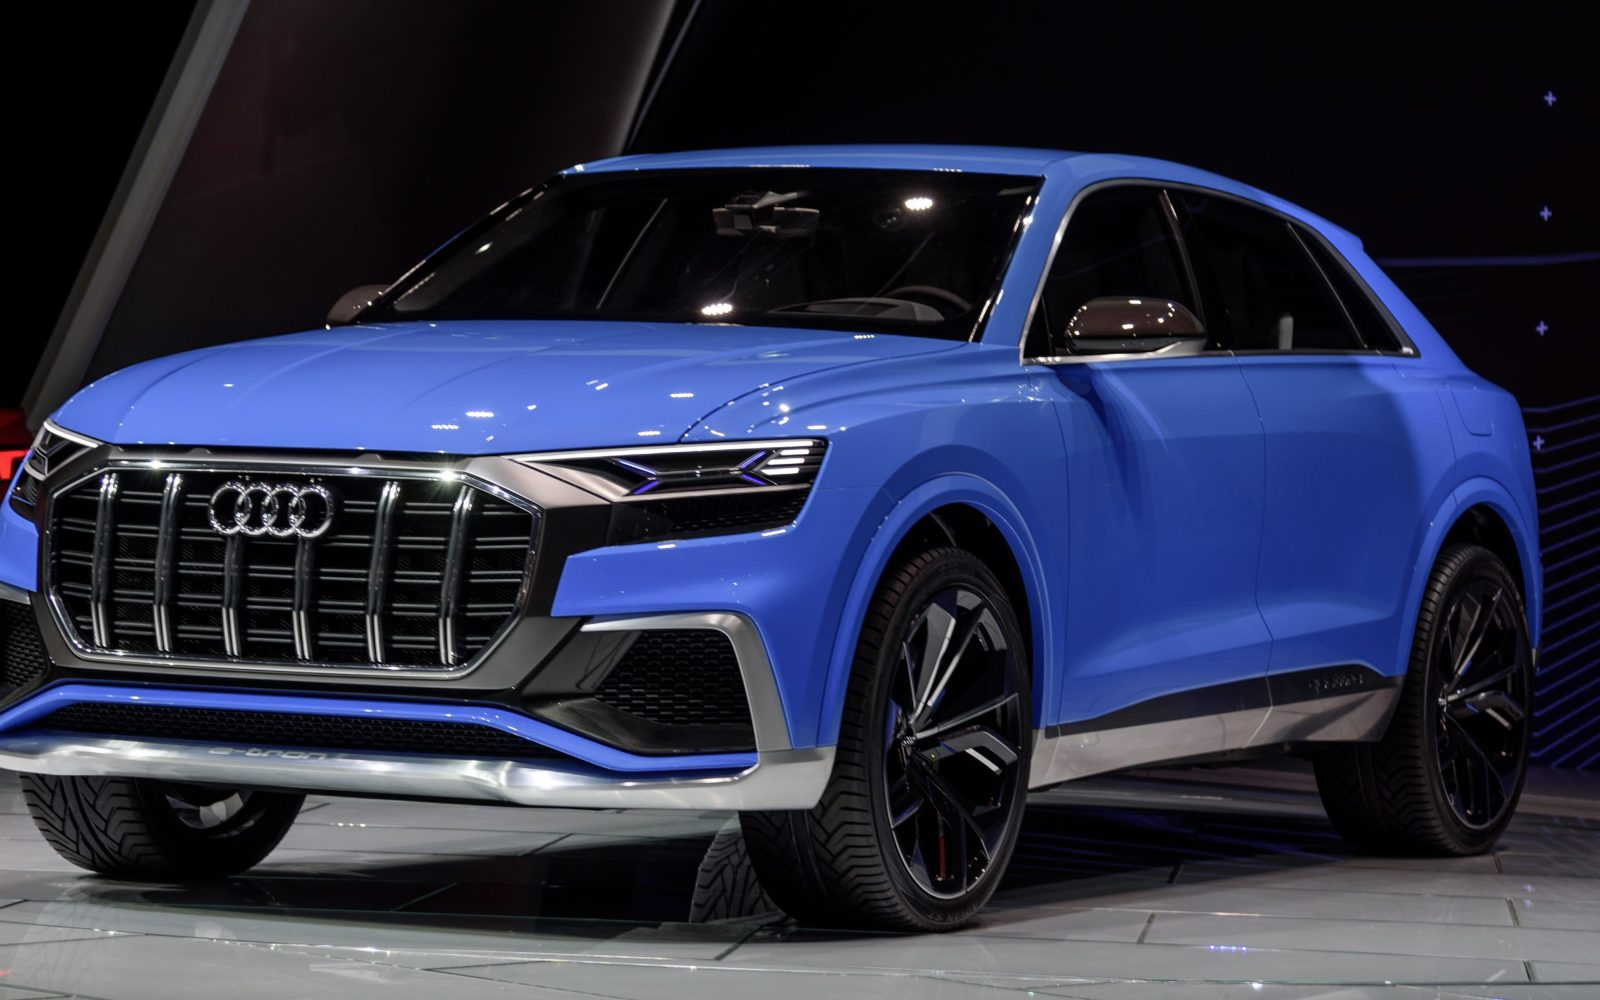 Audi unveils new plug-in electric Q8 SUV ahead of fully ...